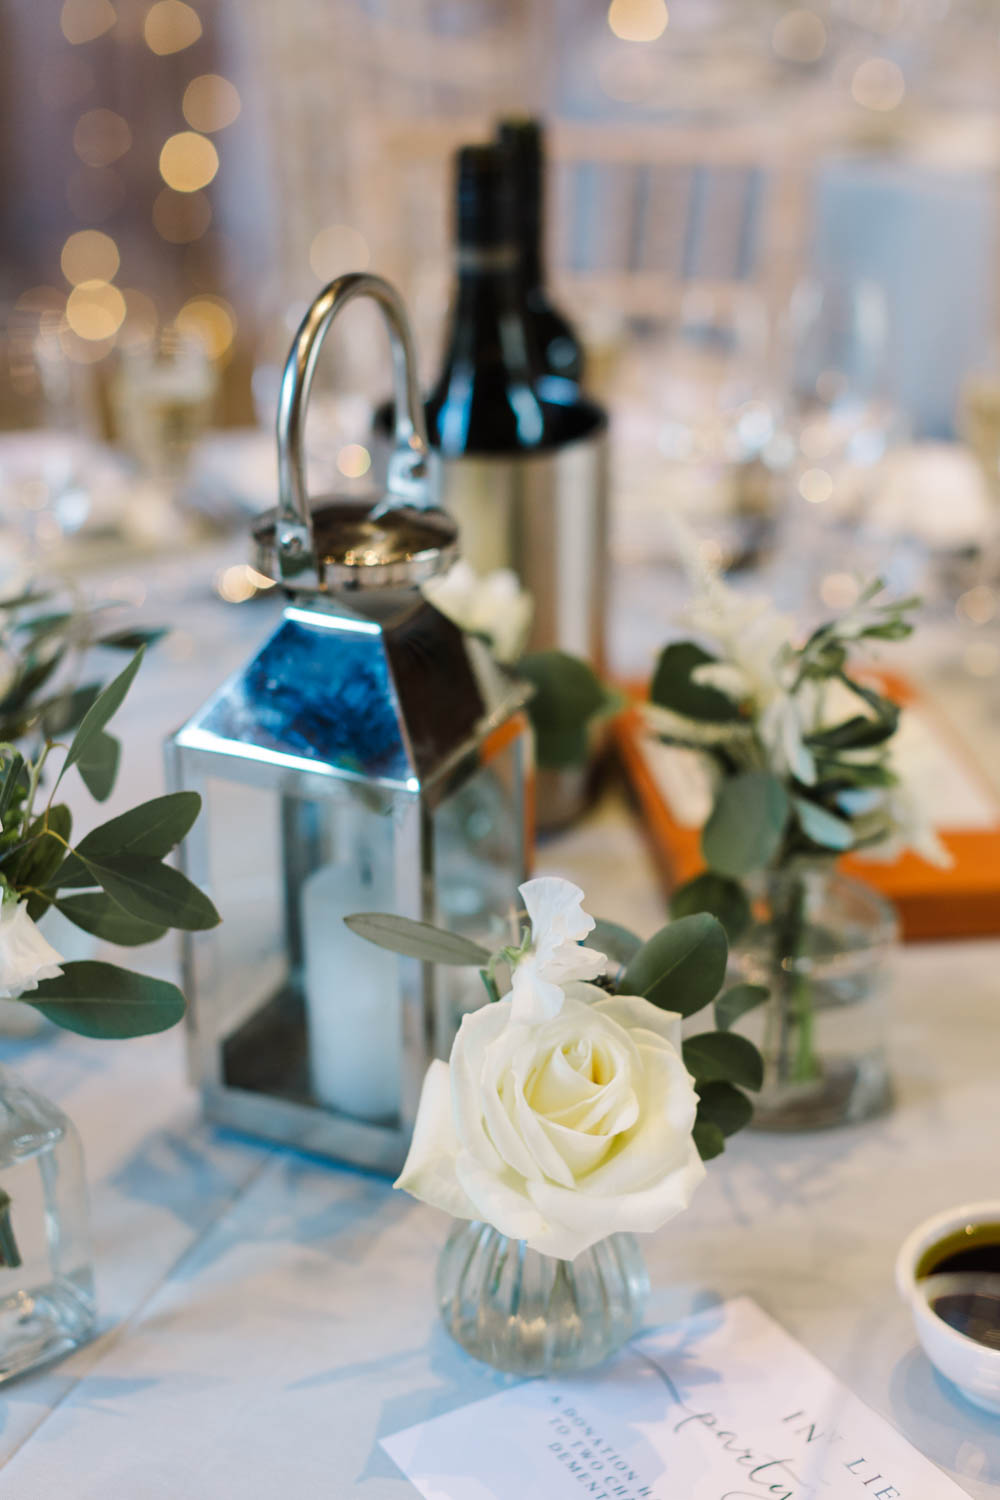 Centrepiece Hurricane Lamp Candle Flowers Dove Grey Wedding Danielle Smith Photography